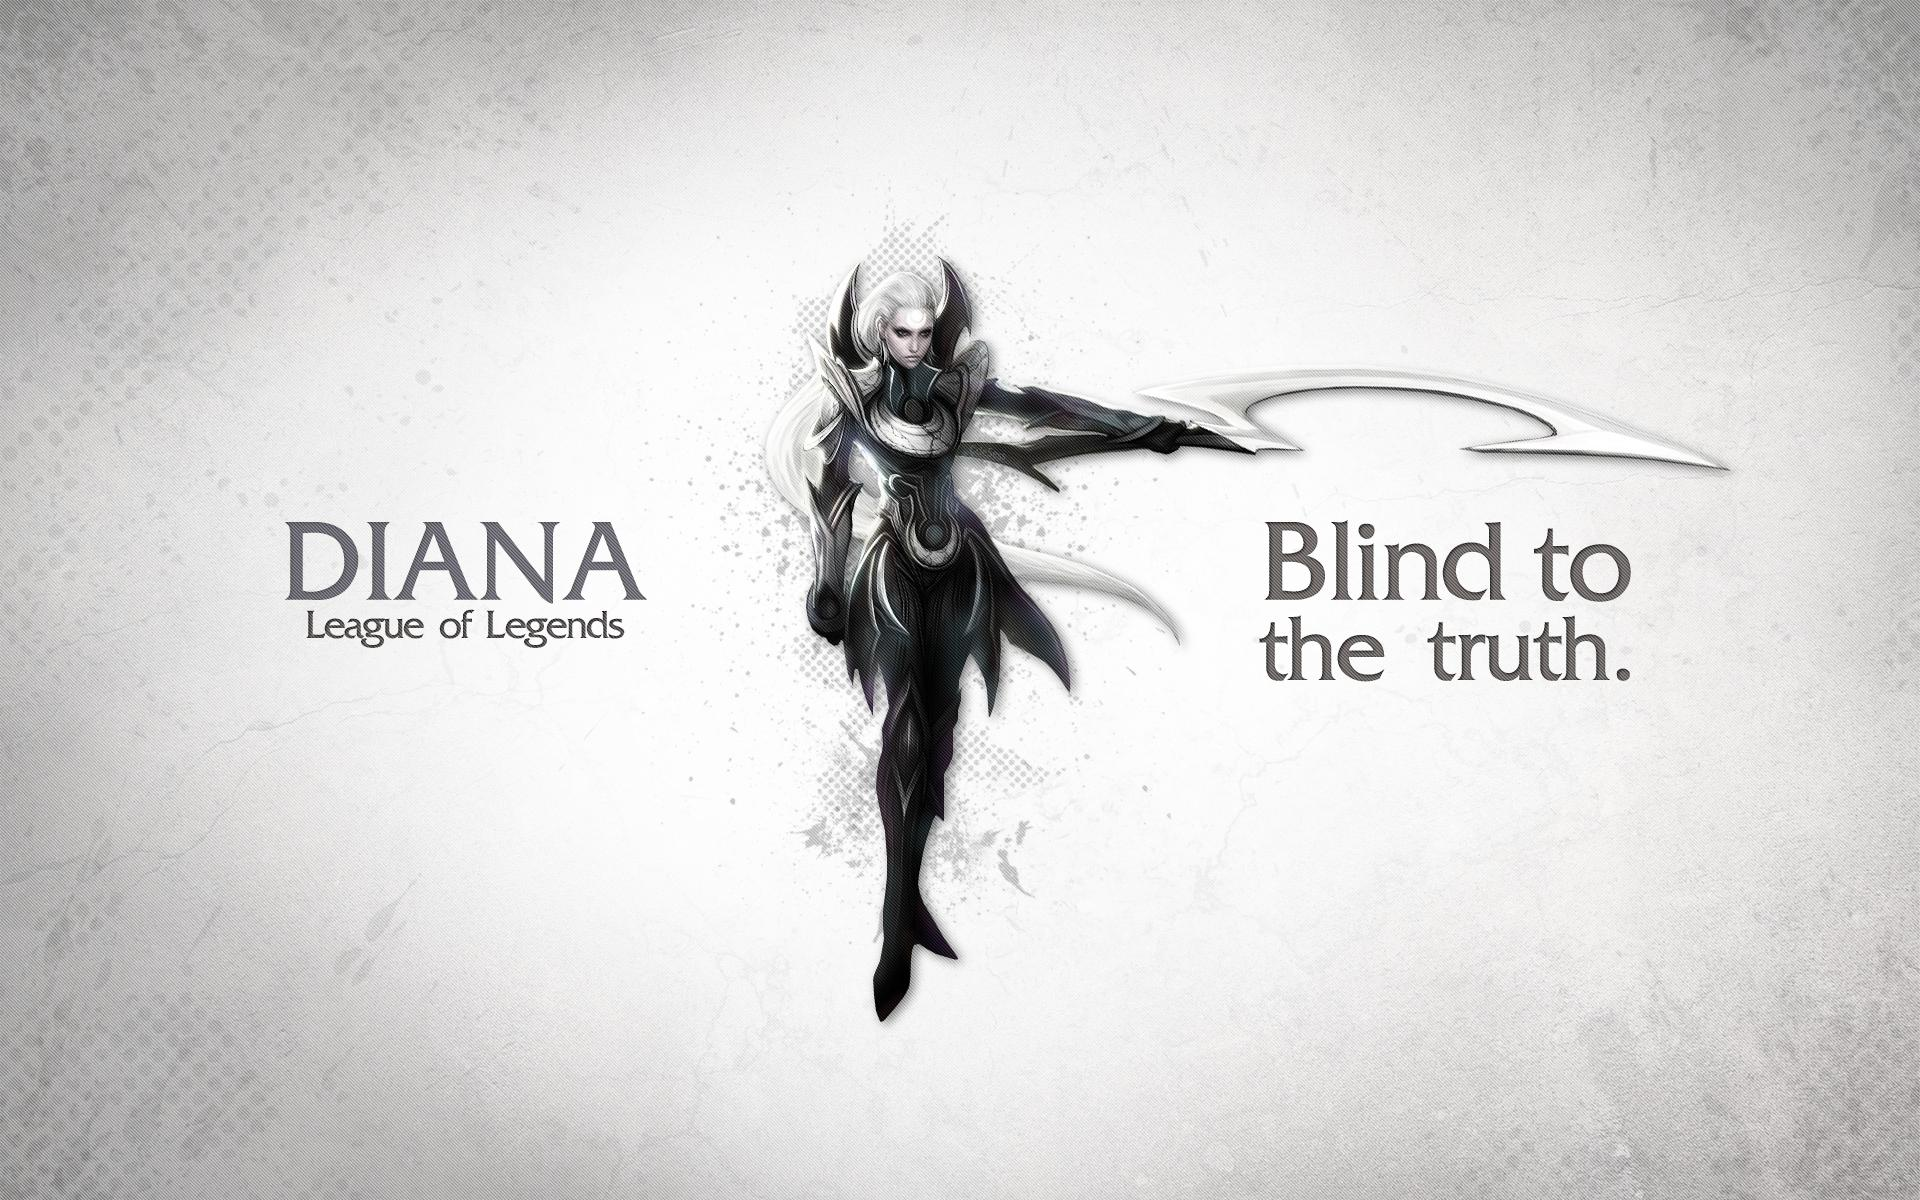 Diana wallpaper